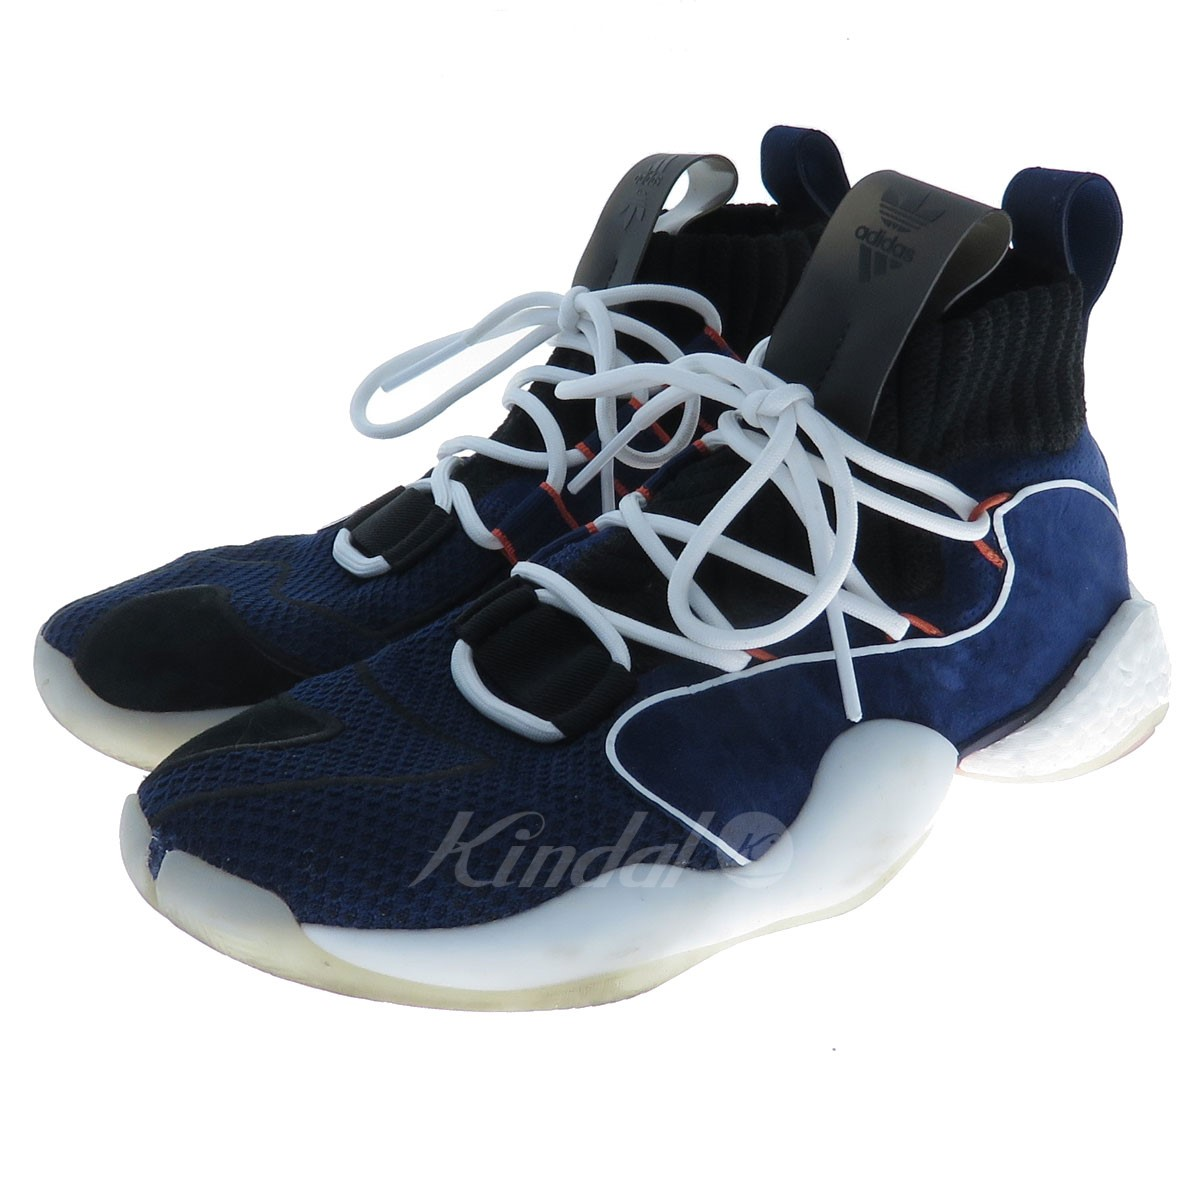 super popular e9b9d b2305 adidas Originals 19SS CRAZY BYW LVL X navy size: 27 5cm (Adidas originals)